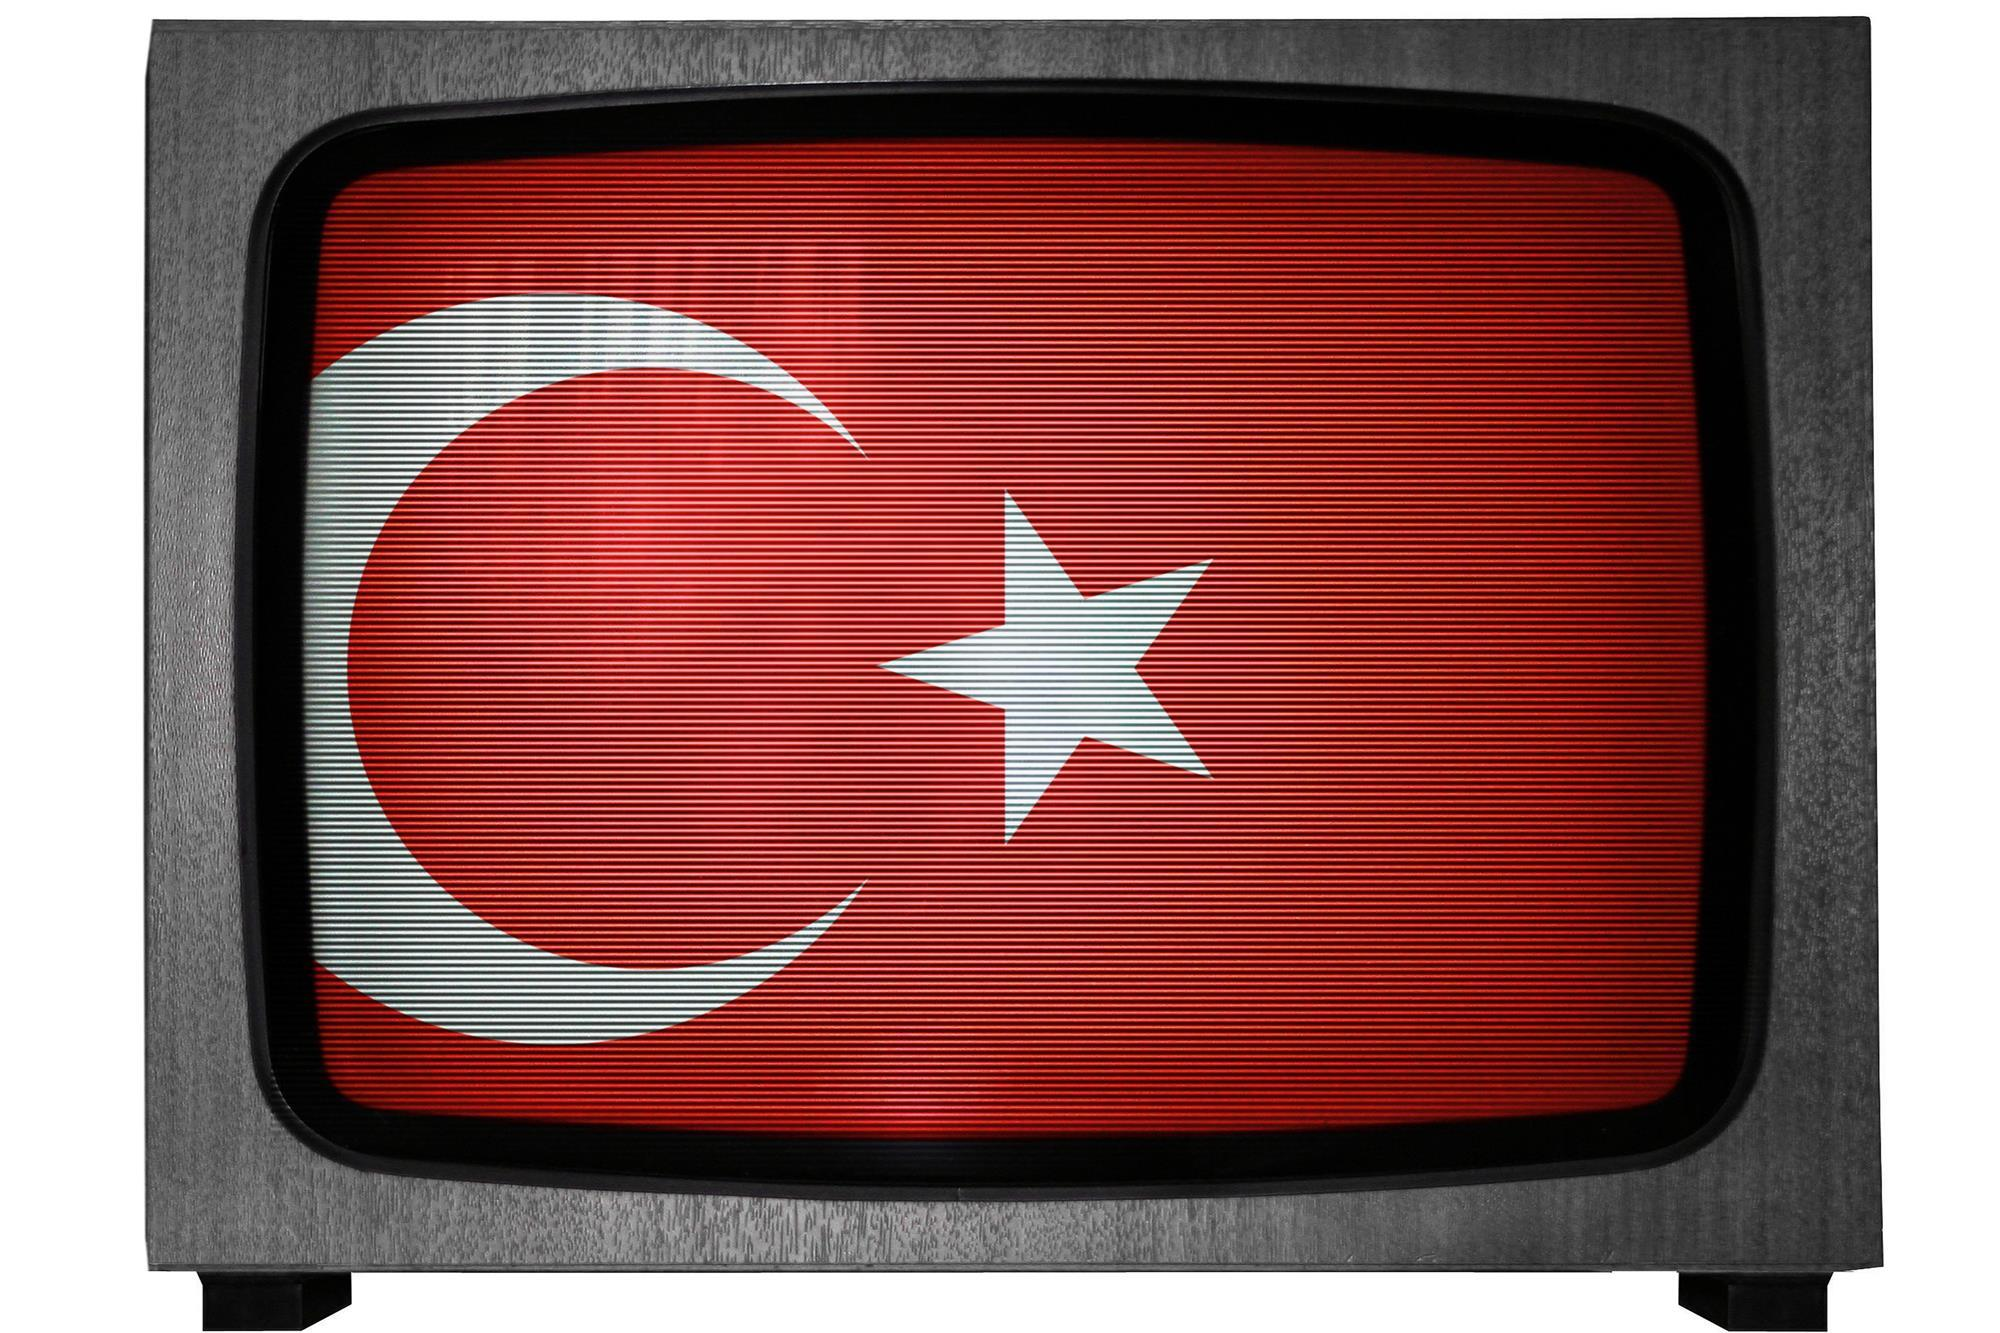 Turkey to introduce new regulations for OTT services | Industry